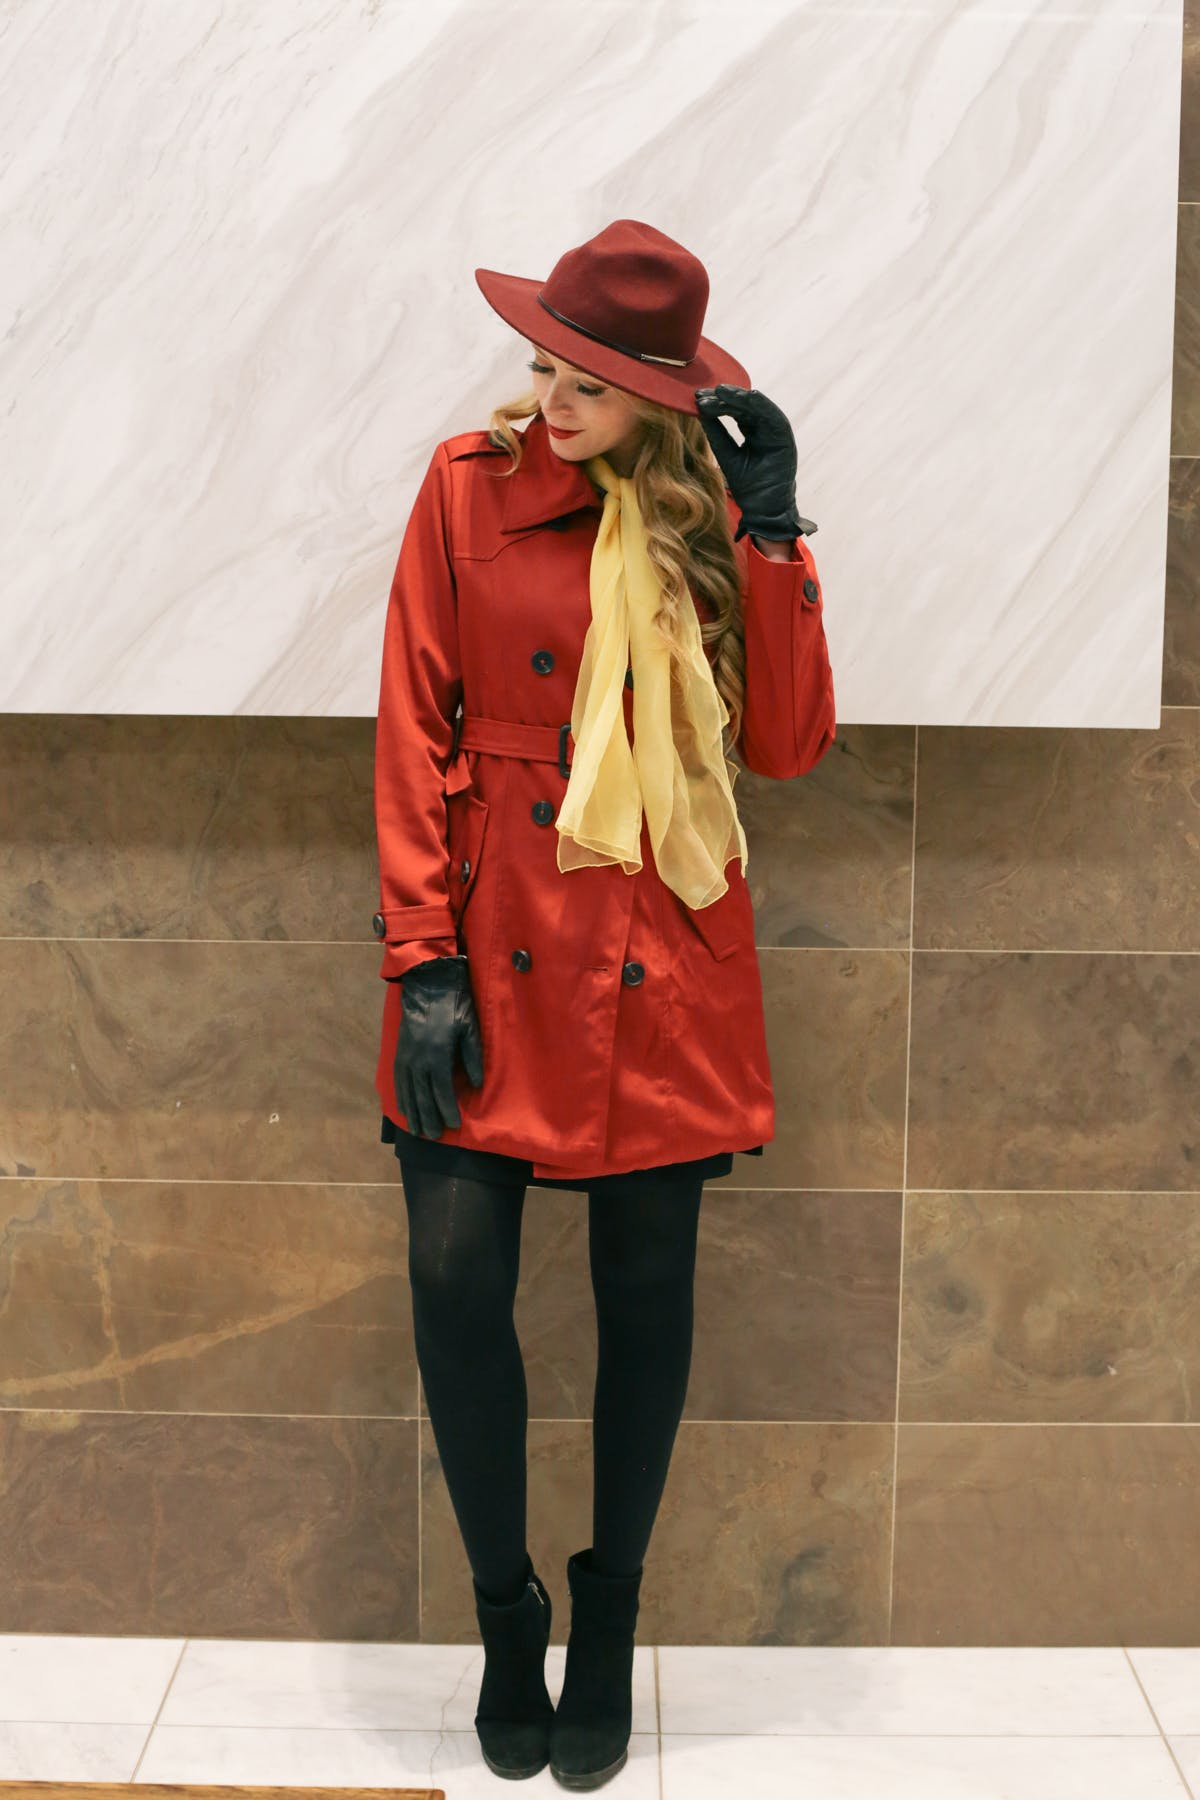 Carmen Sandiego DIY Halloween Costume: wearing a red trench coat, red fedora and yellow scarf.